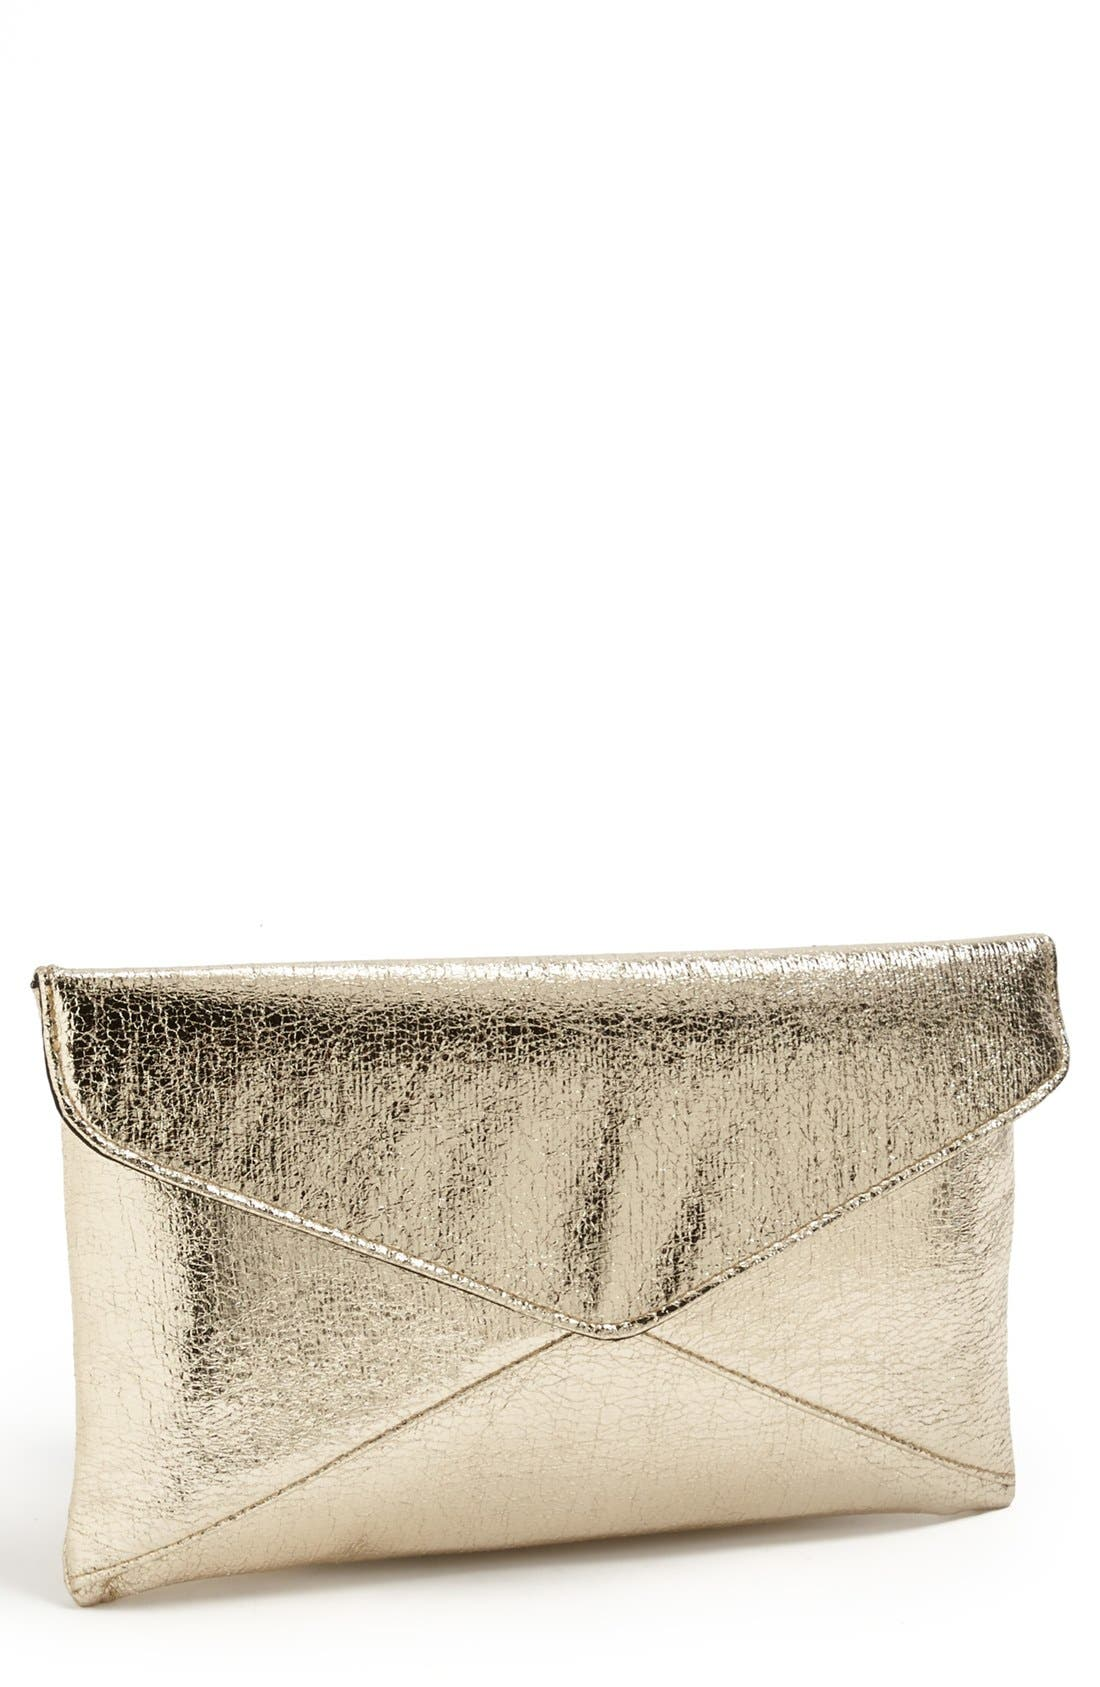 Main Image - Expressions NYC 'Crackle' Envelope Clutch